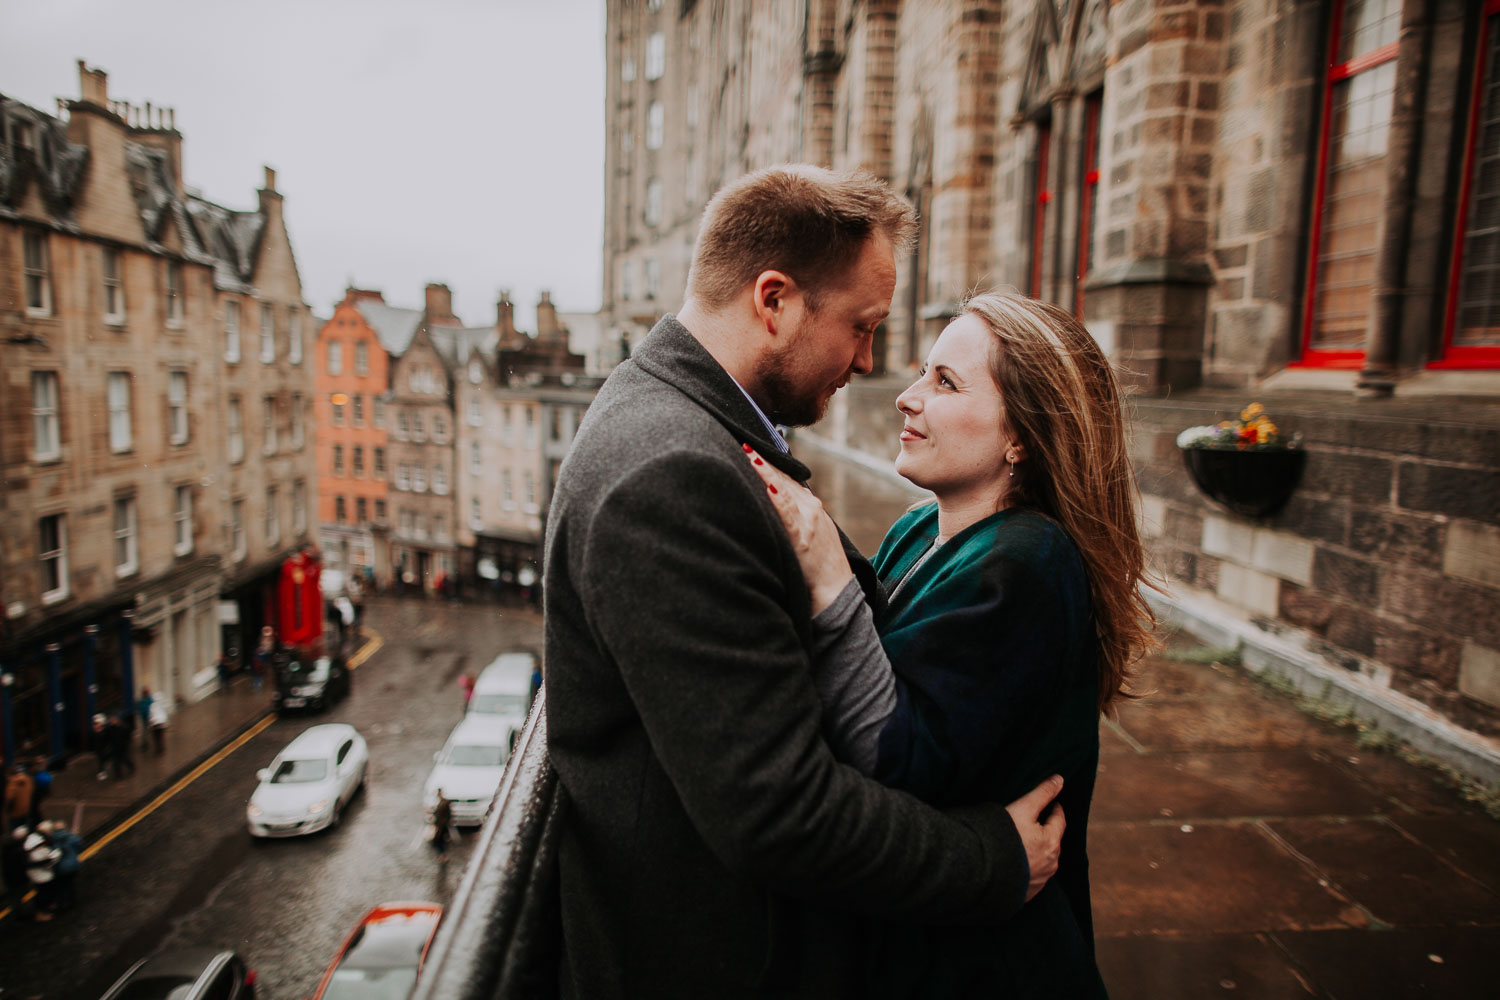 Moody spring engagement session in Old Town of Edinburgh, Scotland. Royal Mile rainy engagement.